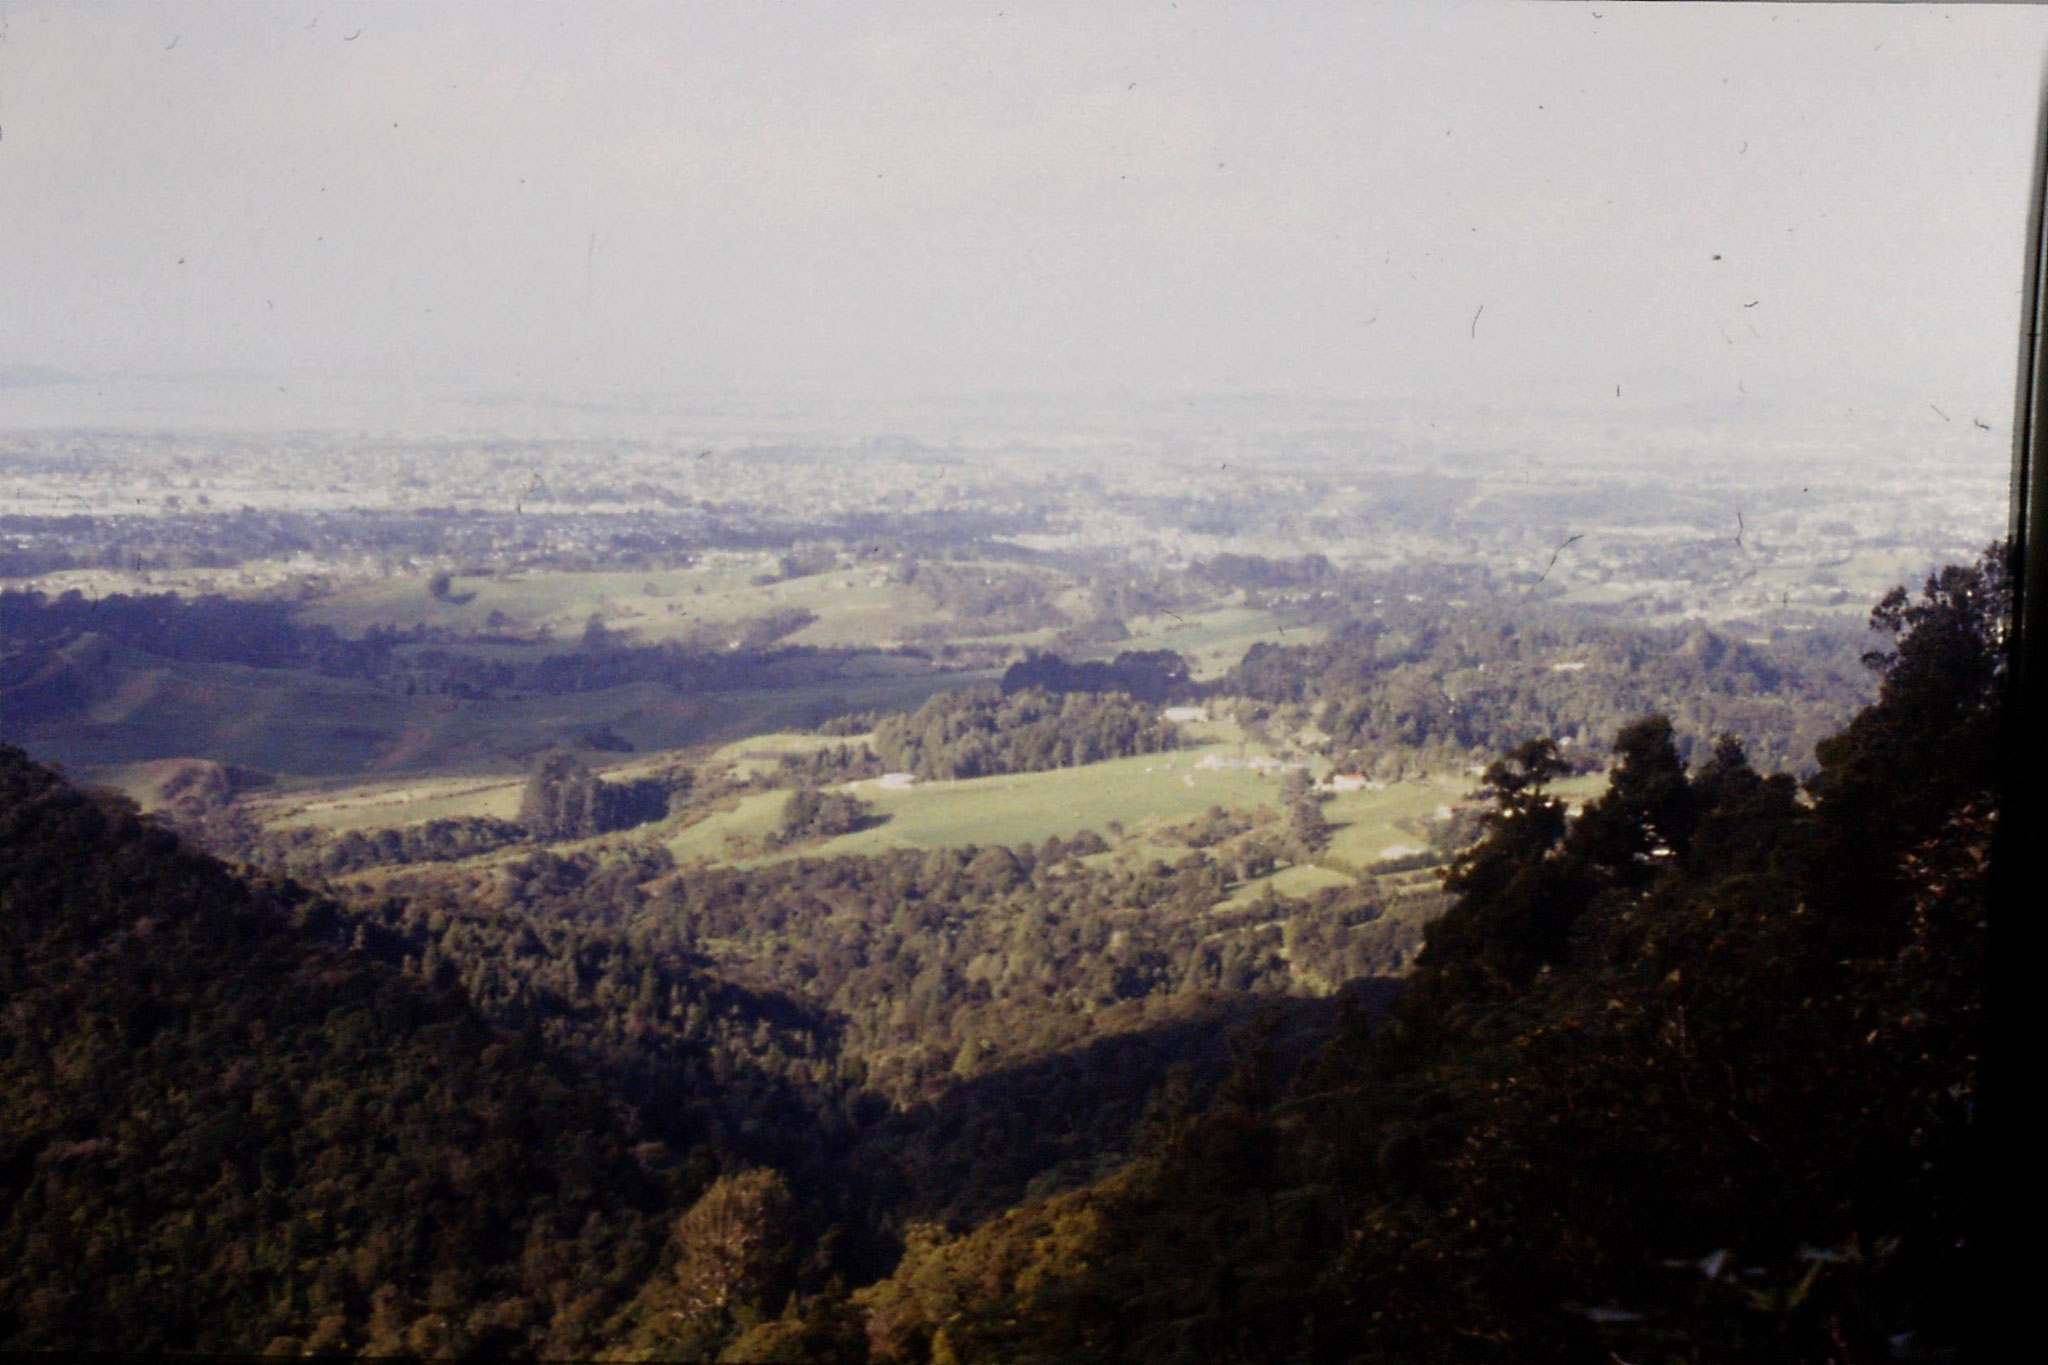 7/9/1990: 16: view towards Auckland from Parkinson's lookout on Waitakere Range